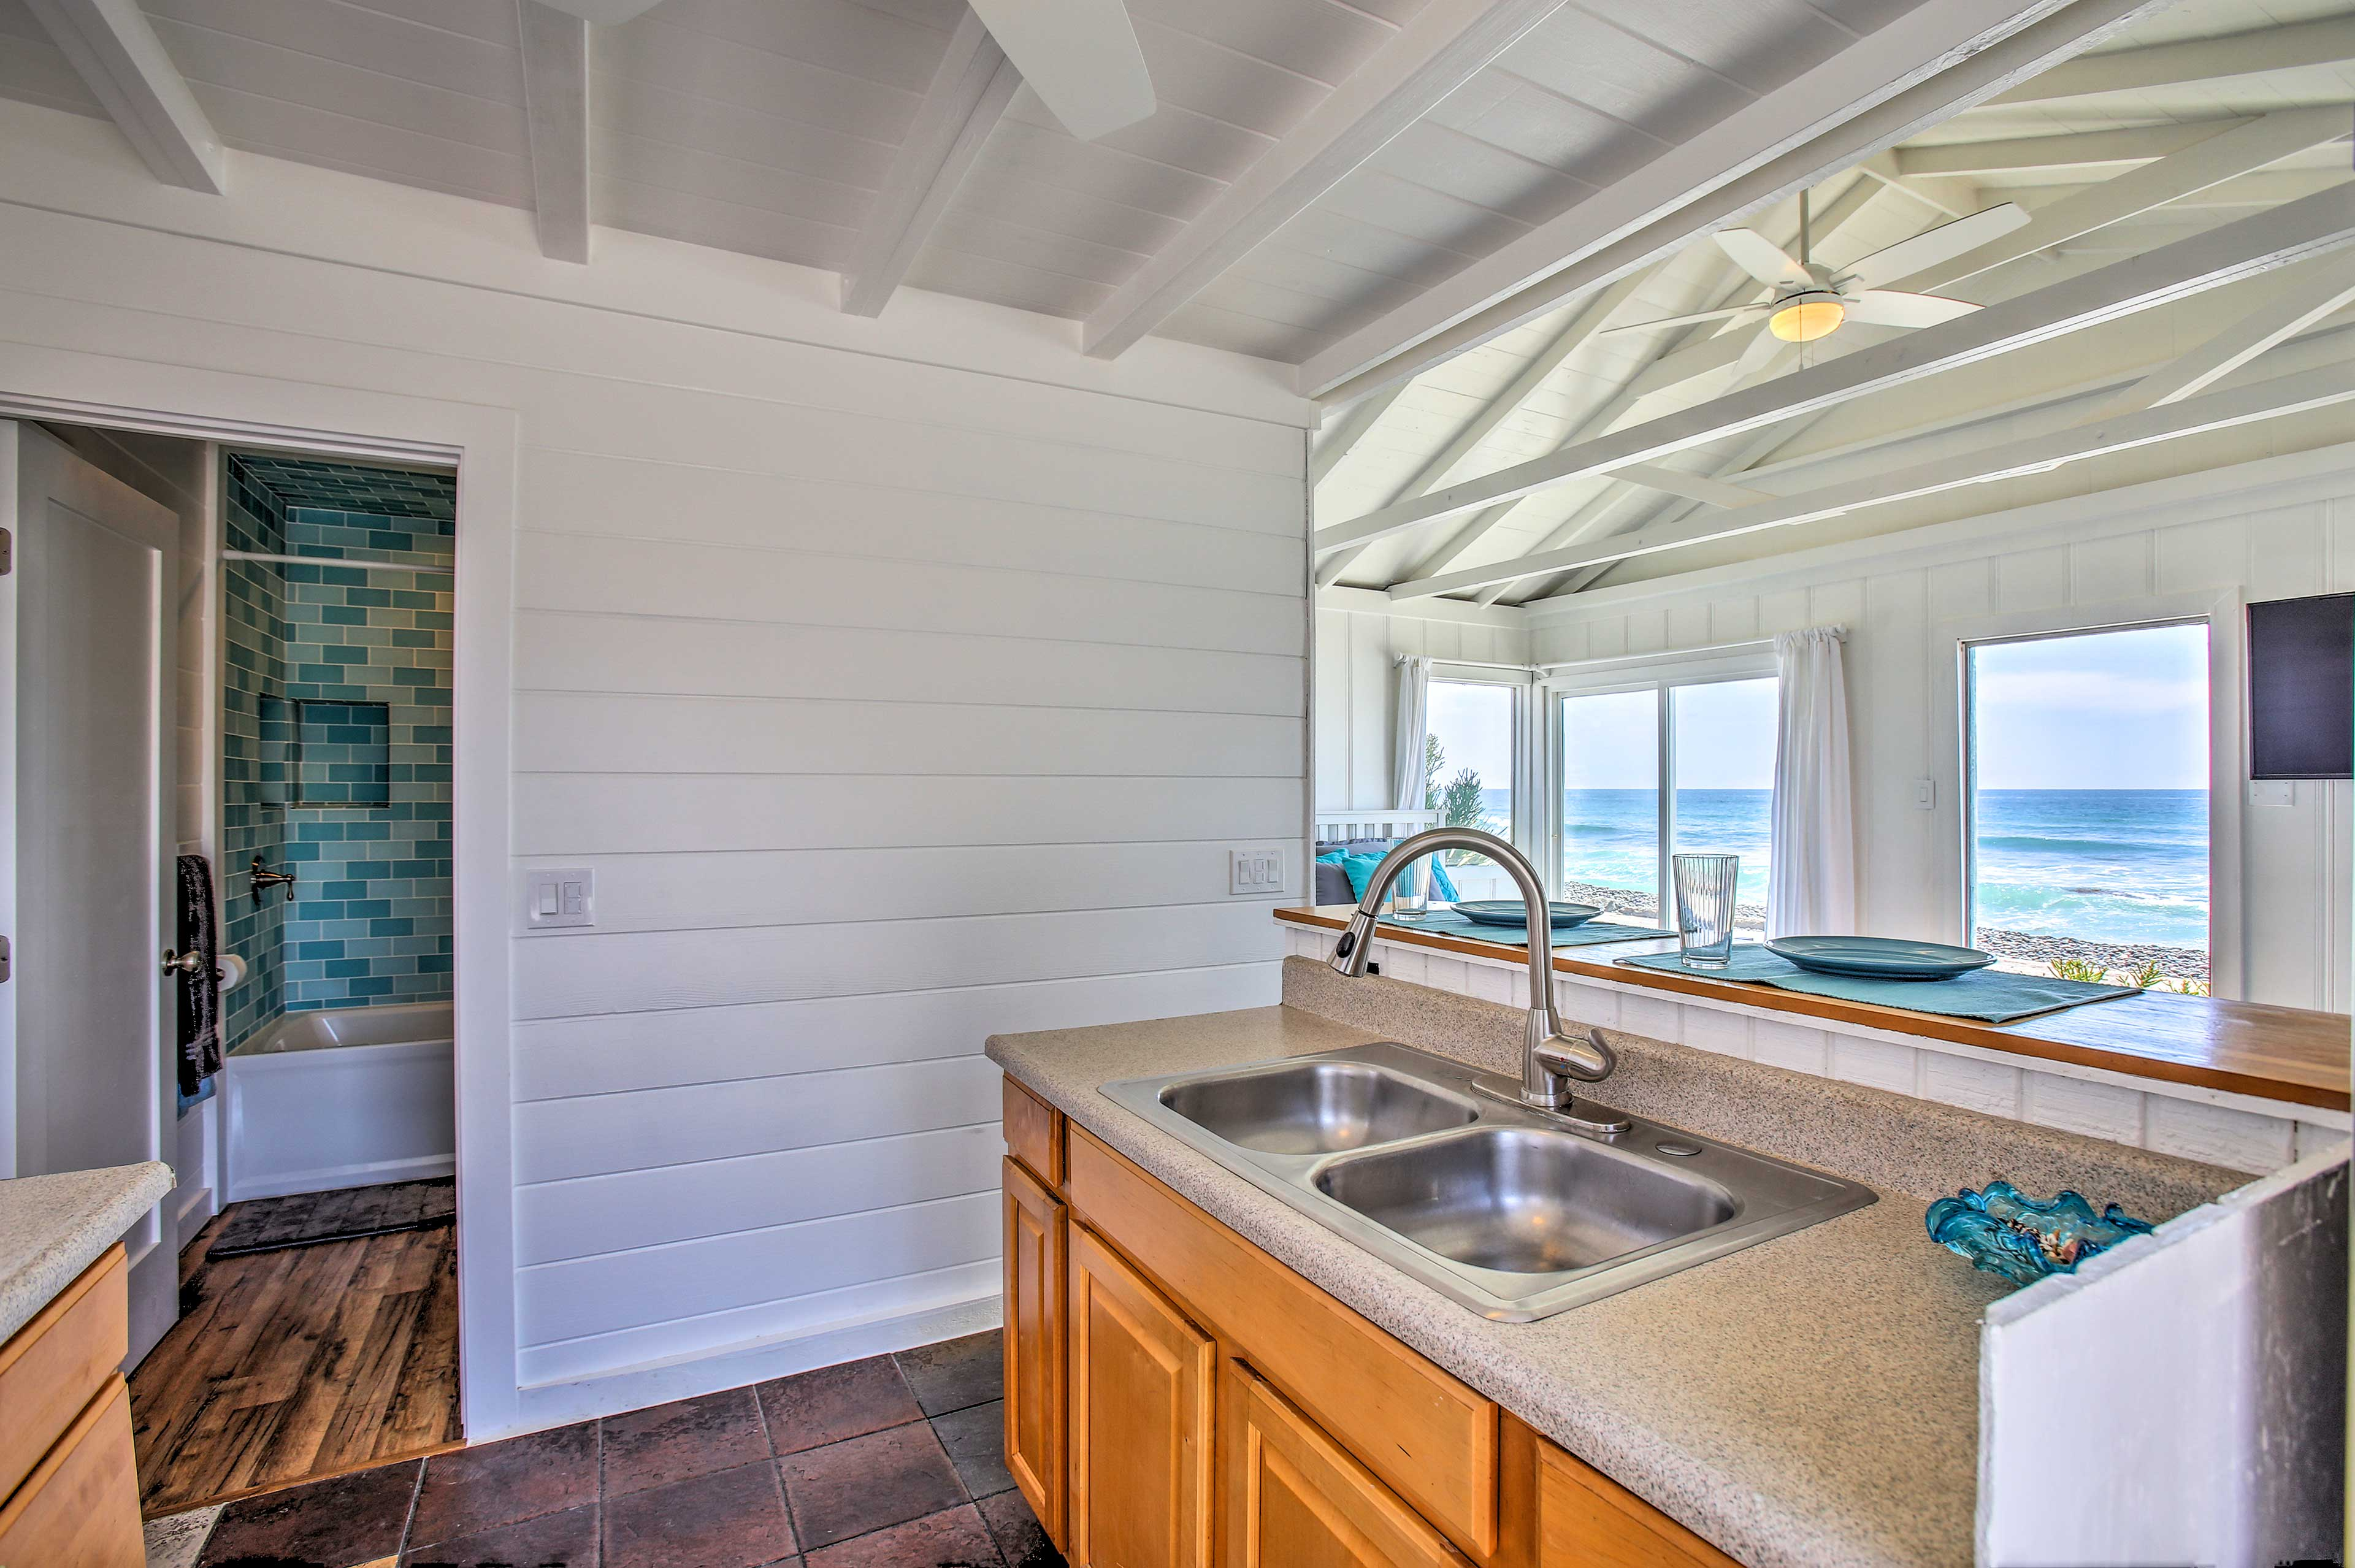 Enjoy the views of the beach while you cook.